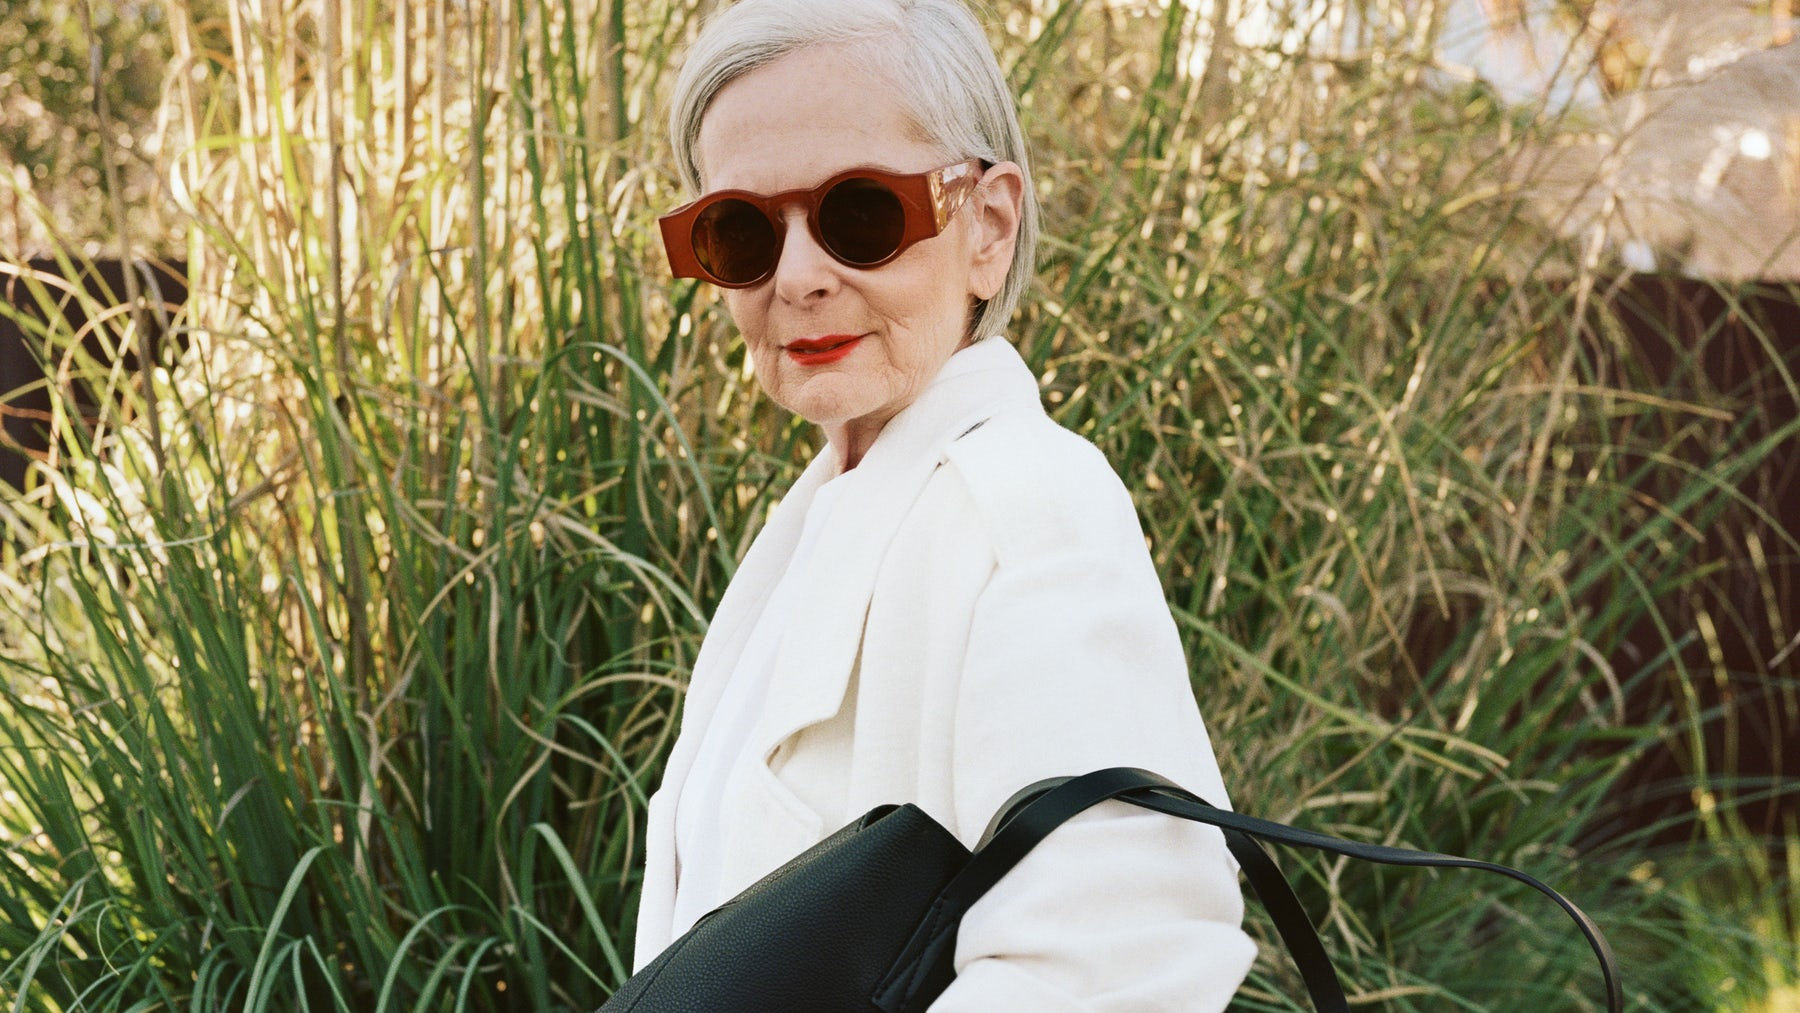 Meet Fashion's Next Generation: Over 60s